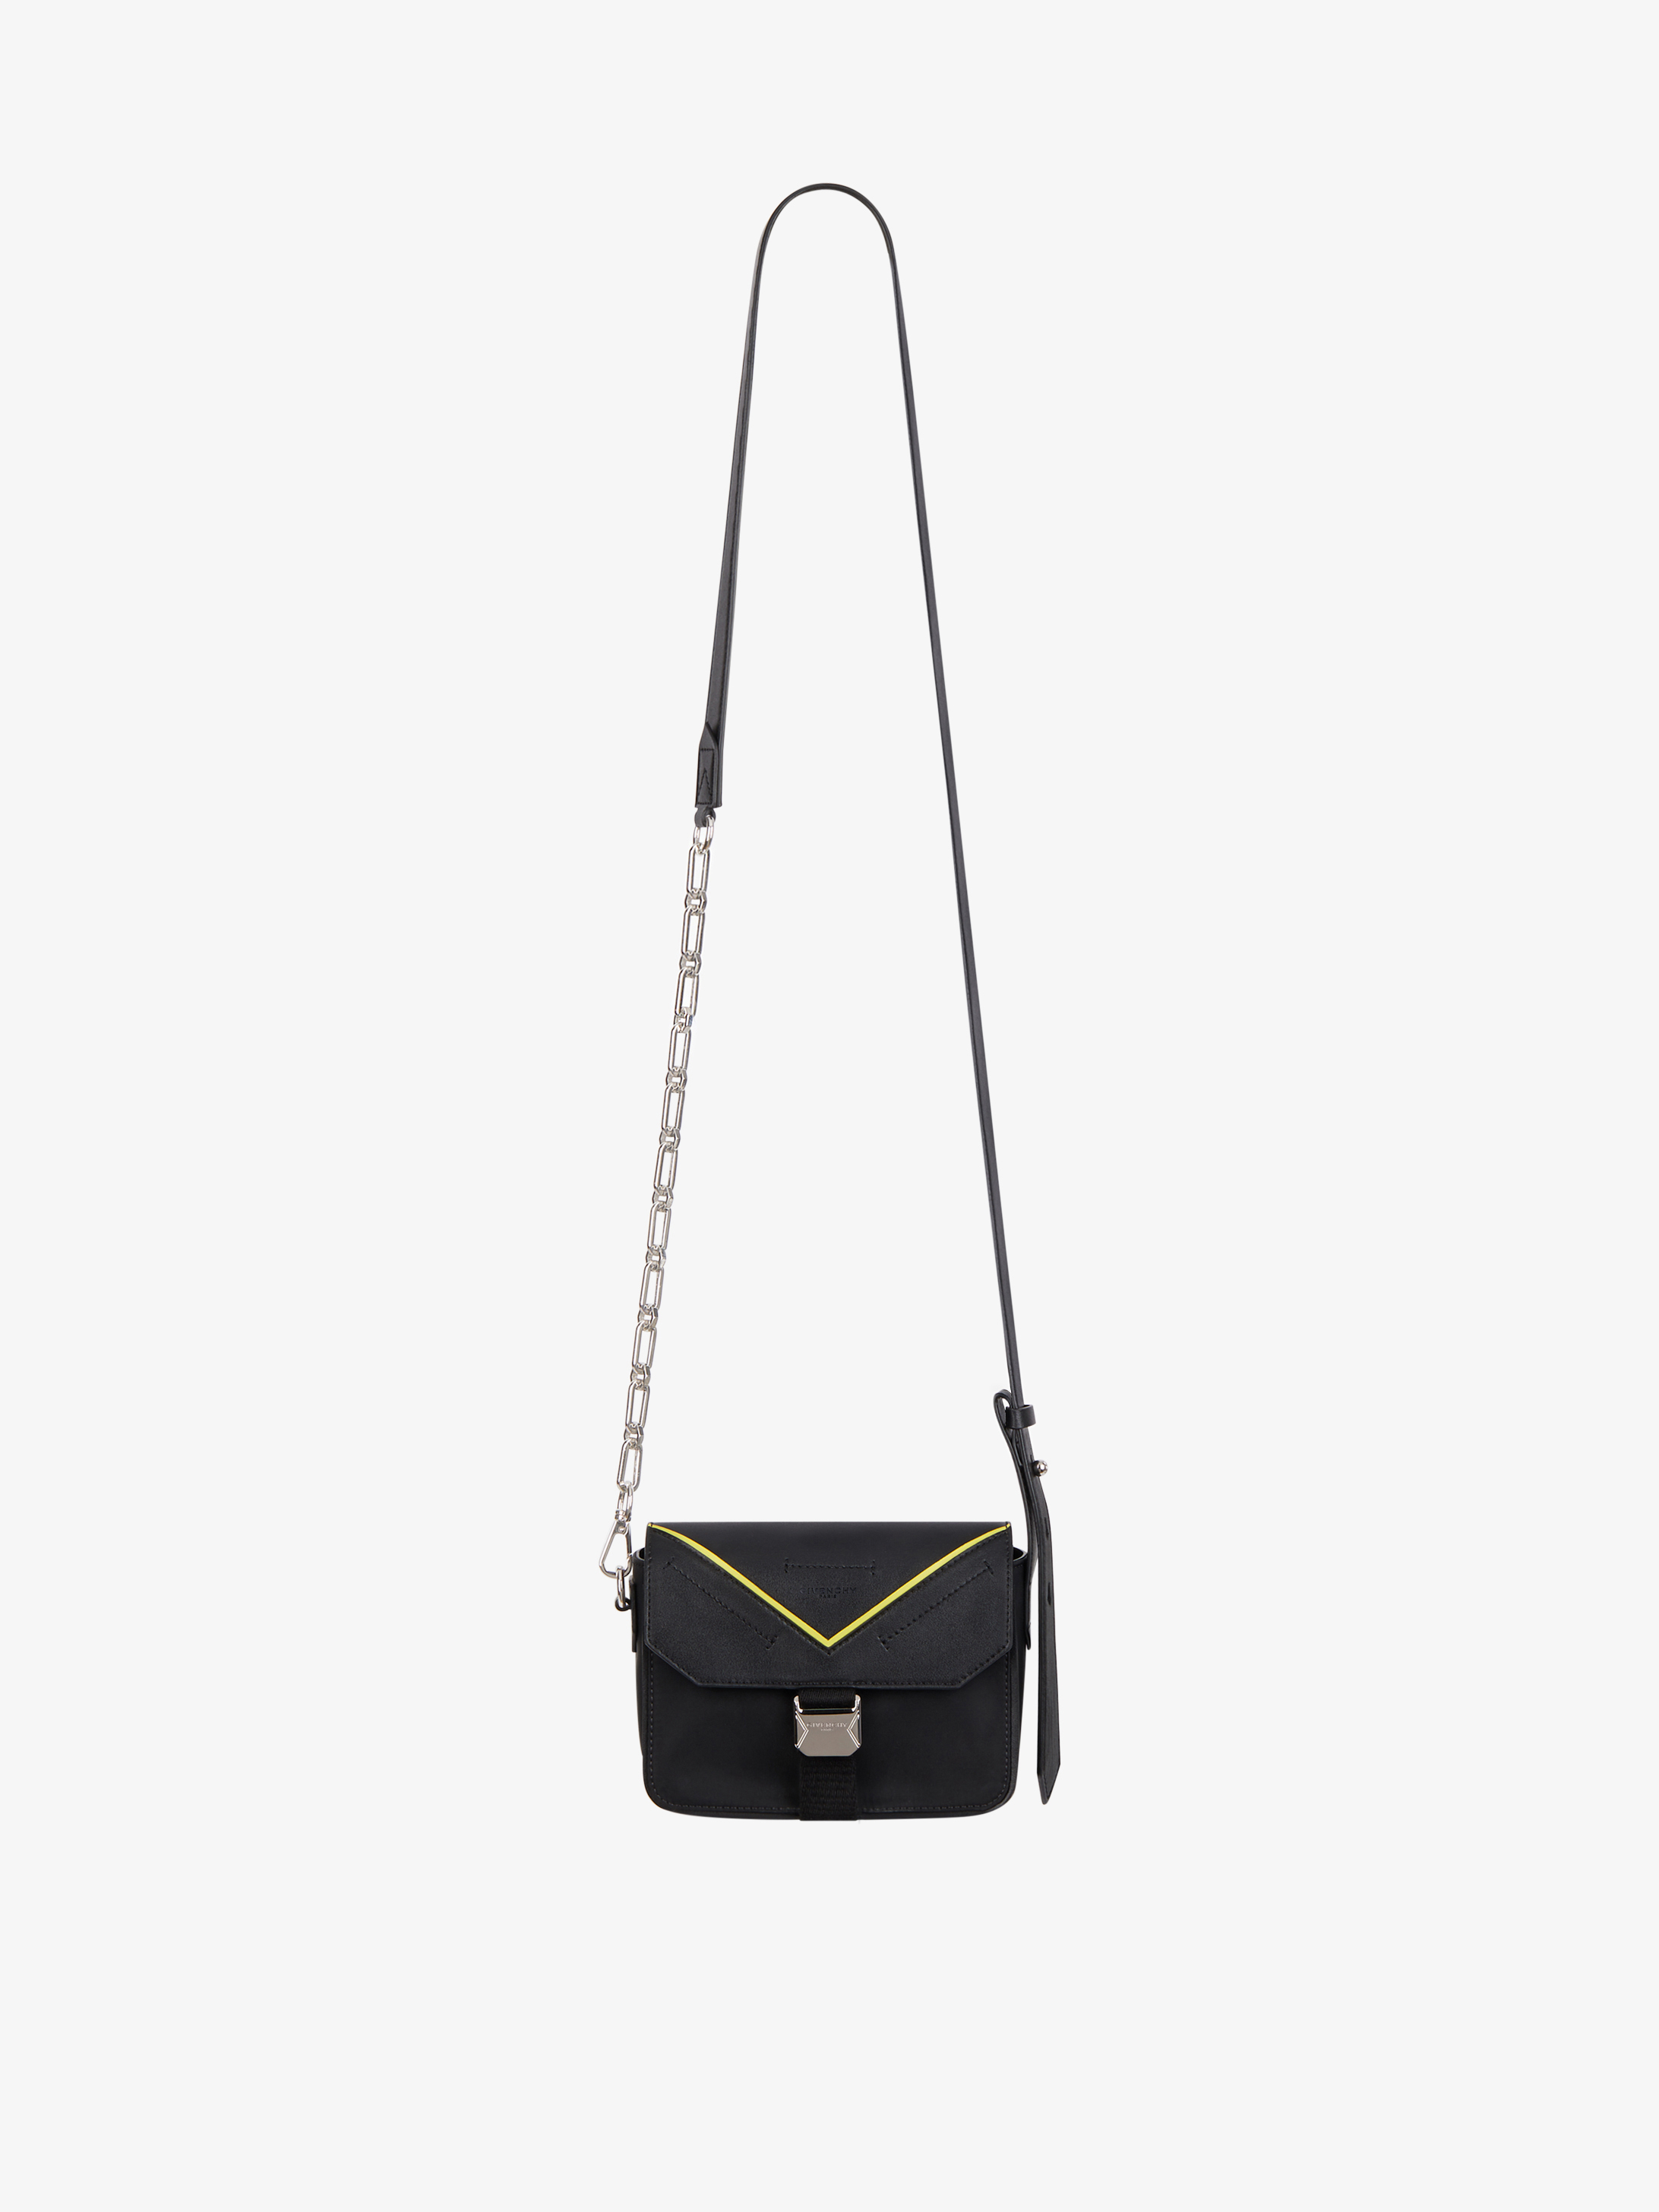 GIVENCHY PARIS Bond crossbody bag in nylon and leather